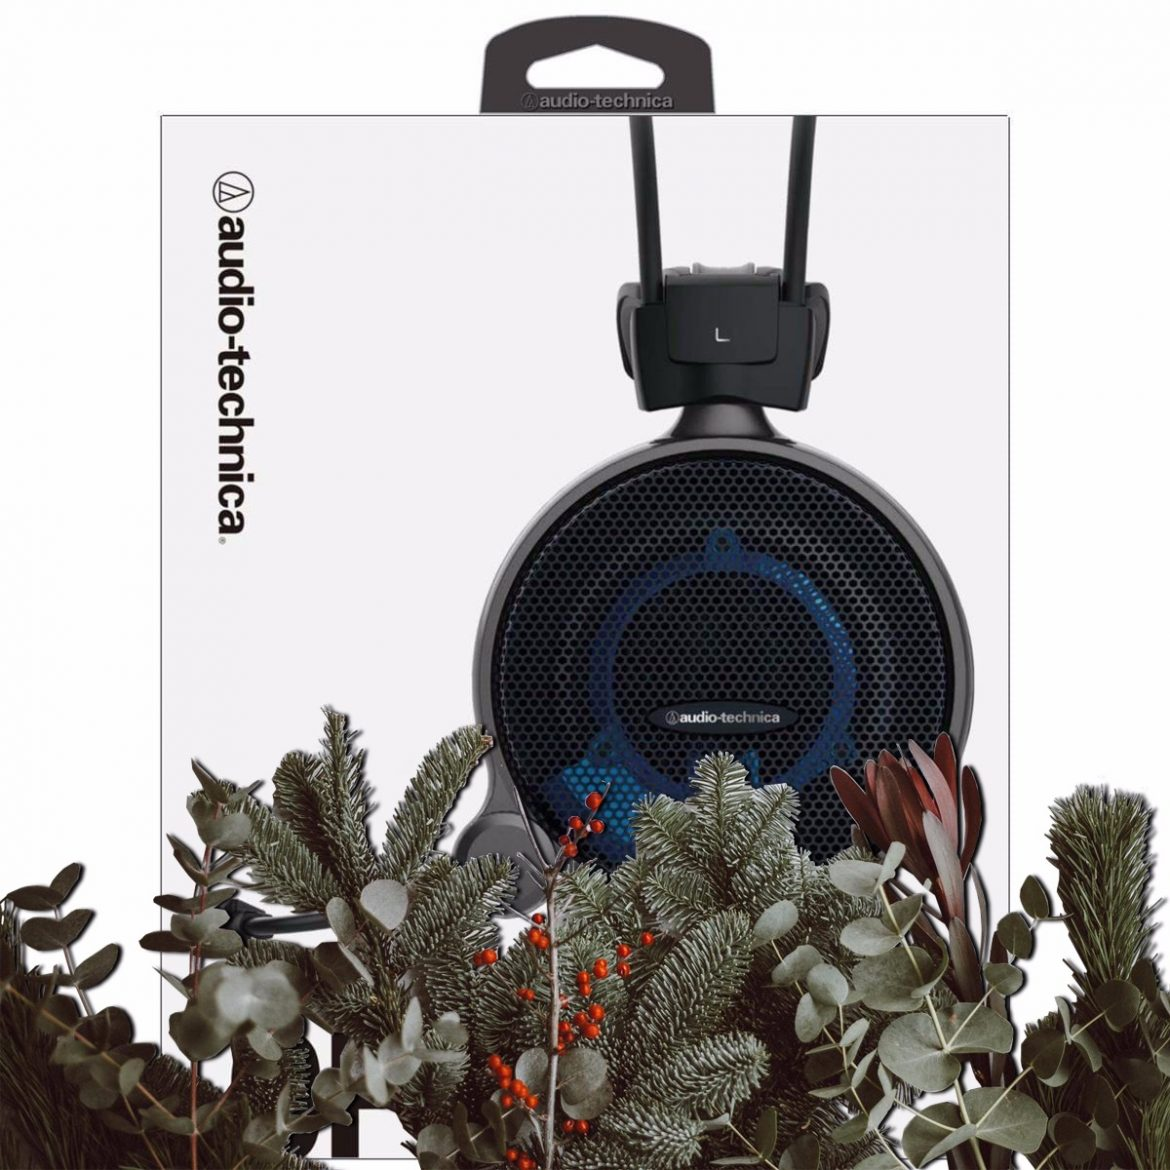 Audio-Technica adg1x senses jultävling